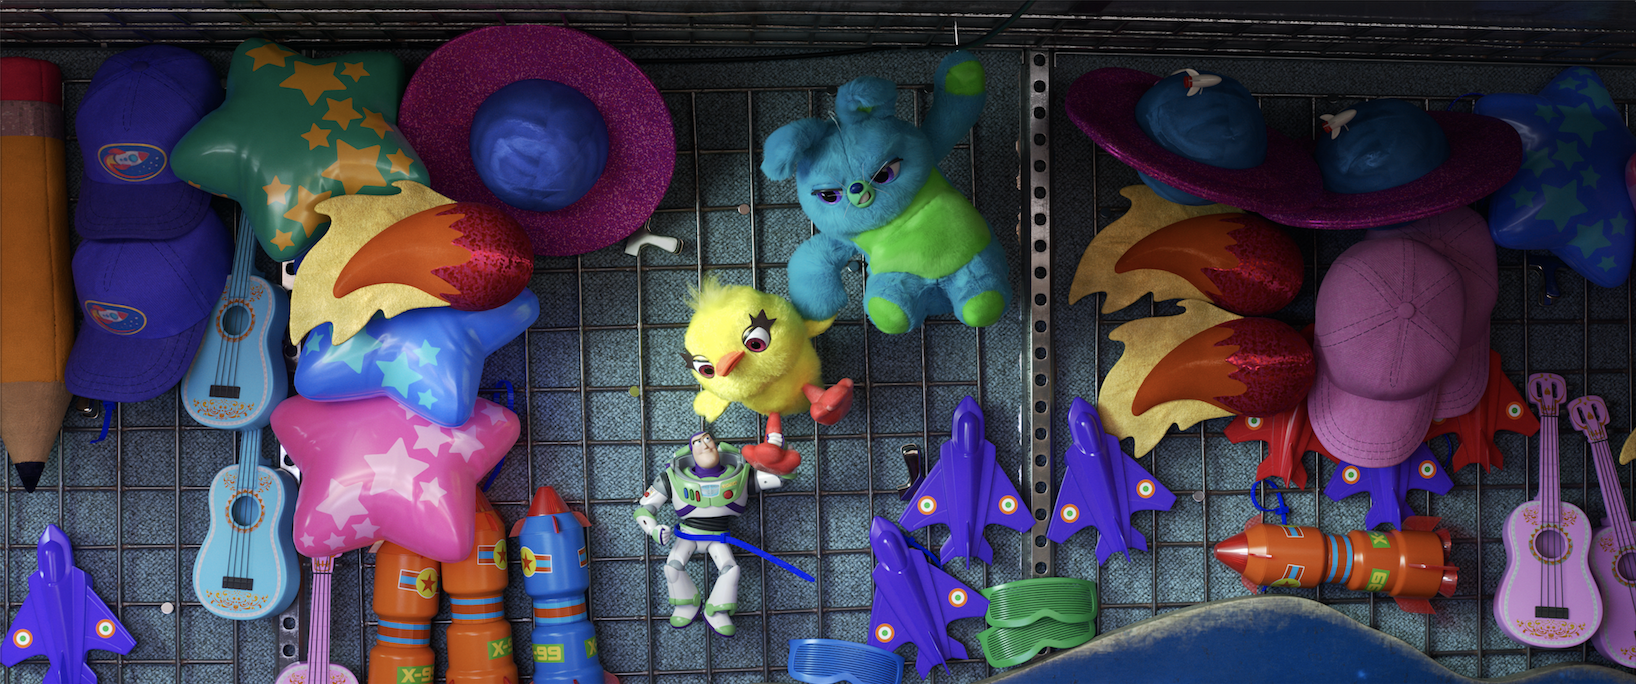 New Video and Image Released for TOY STORY 4